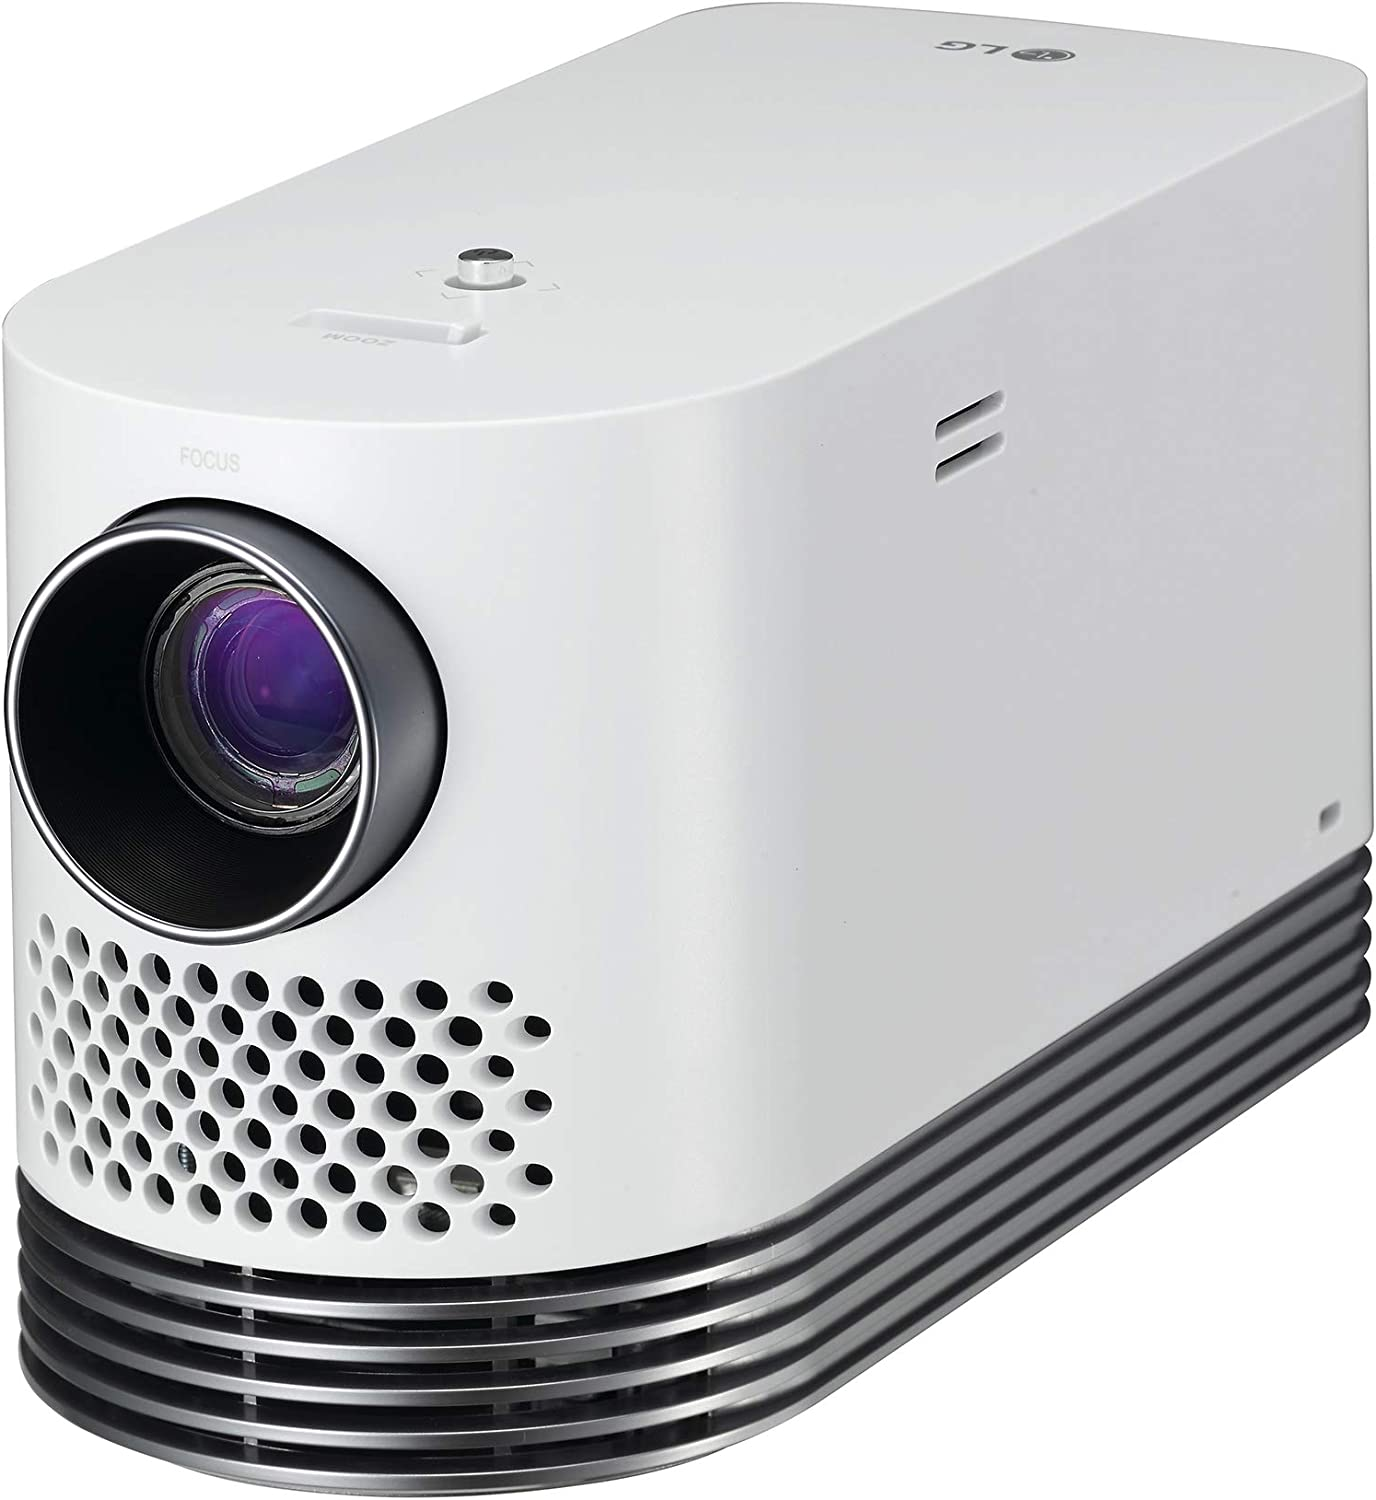 LG HF80LA Laser Smart Home Theater Cinebeam Projector (2019 Model - Class 1 Laser Product)